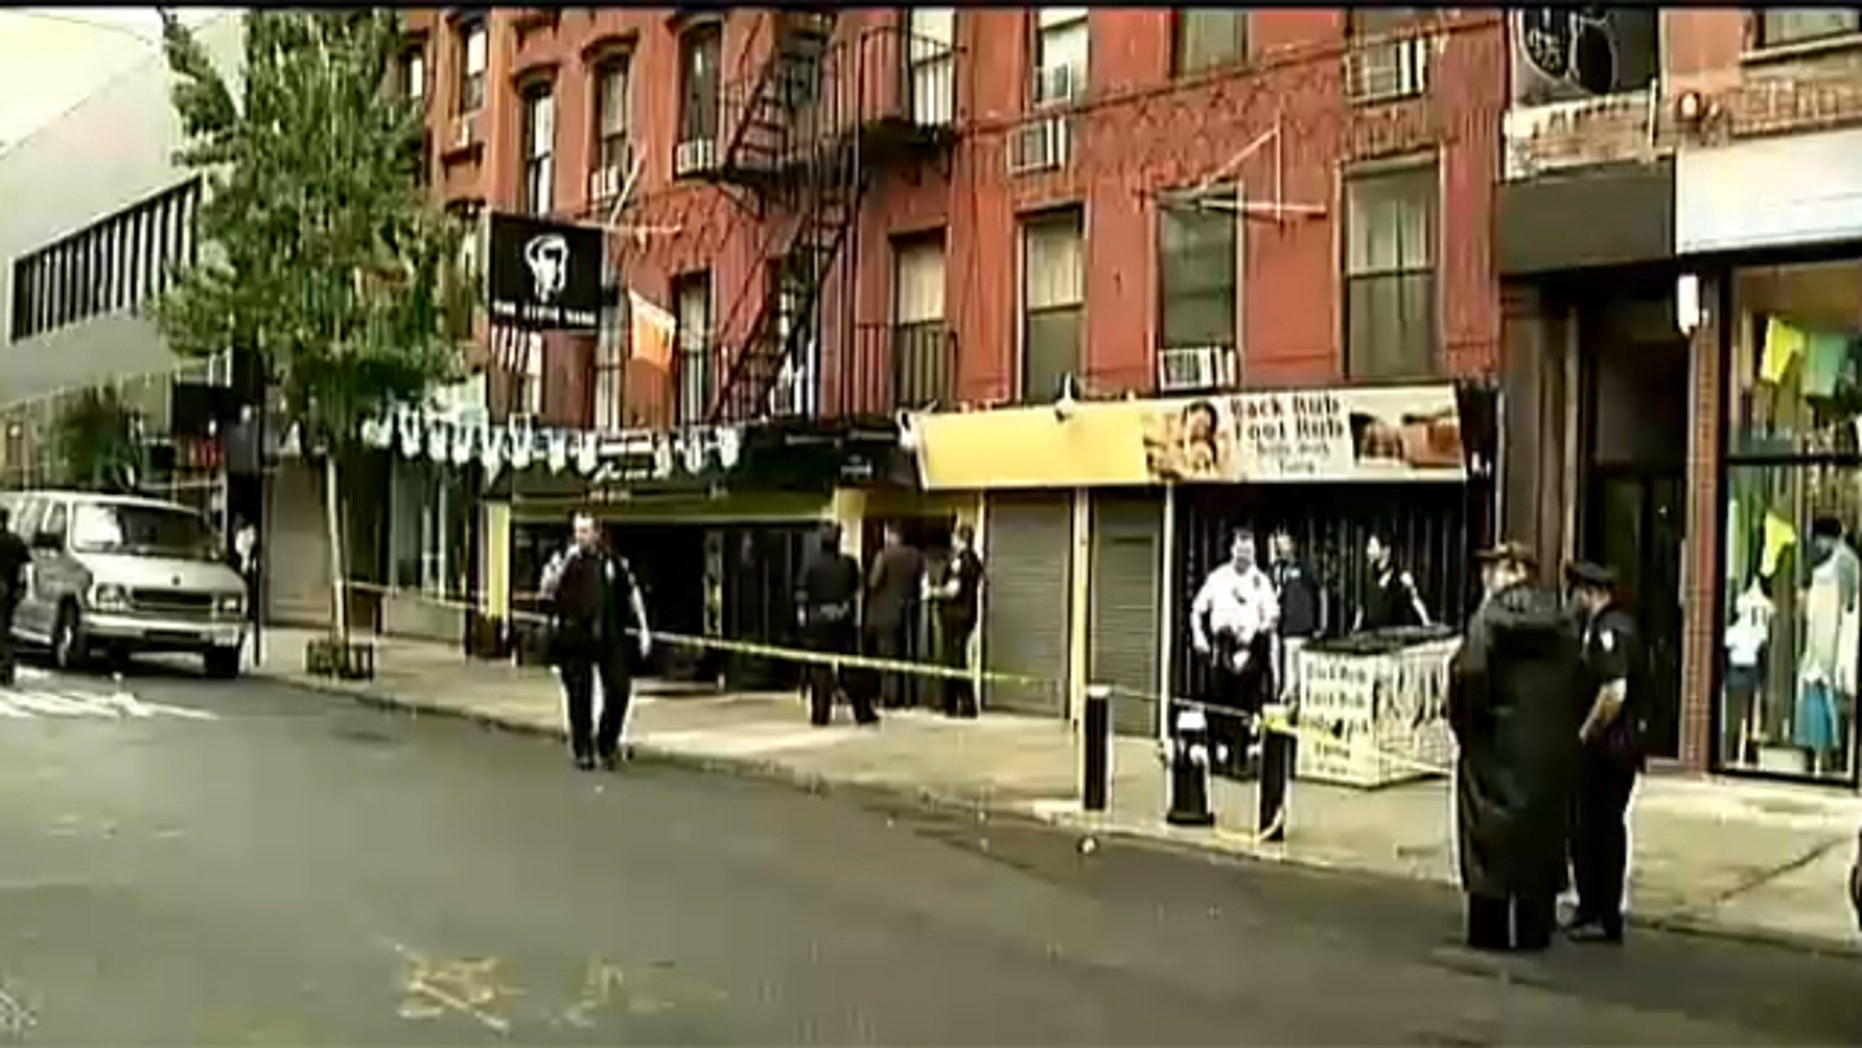 Aug. 27, 2012: Investigators work outside apartment building where woman found dead.